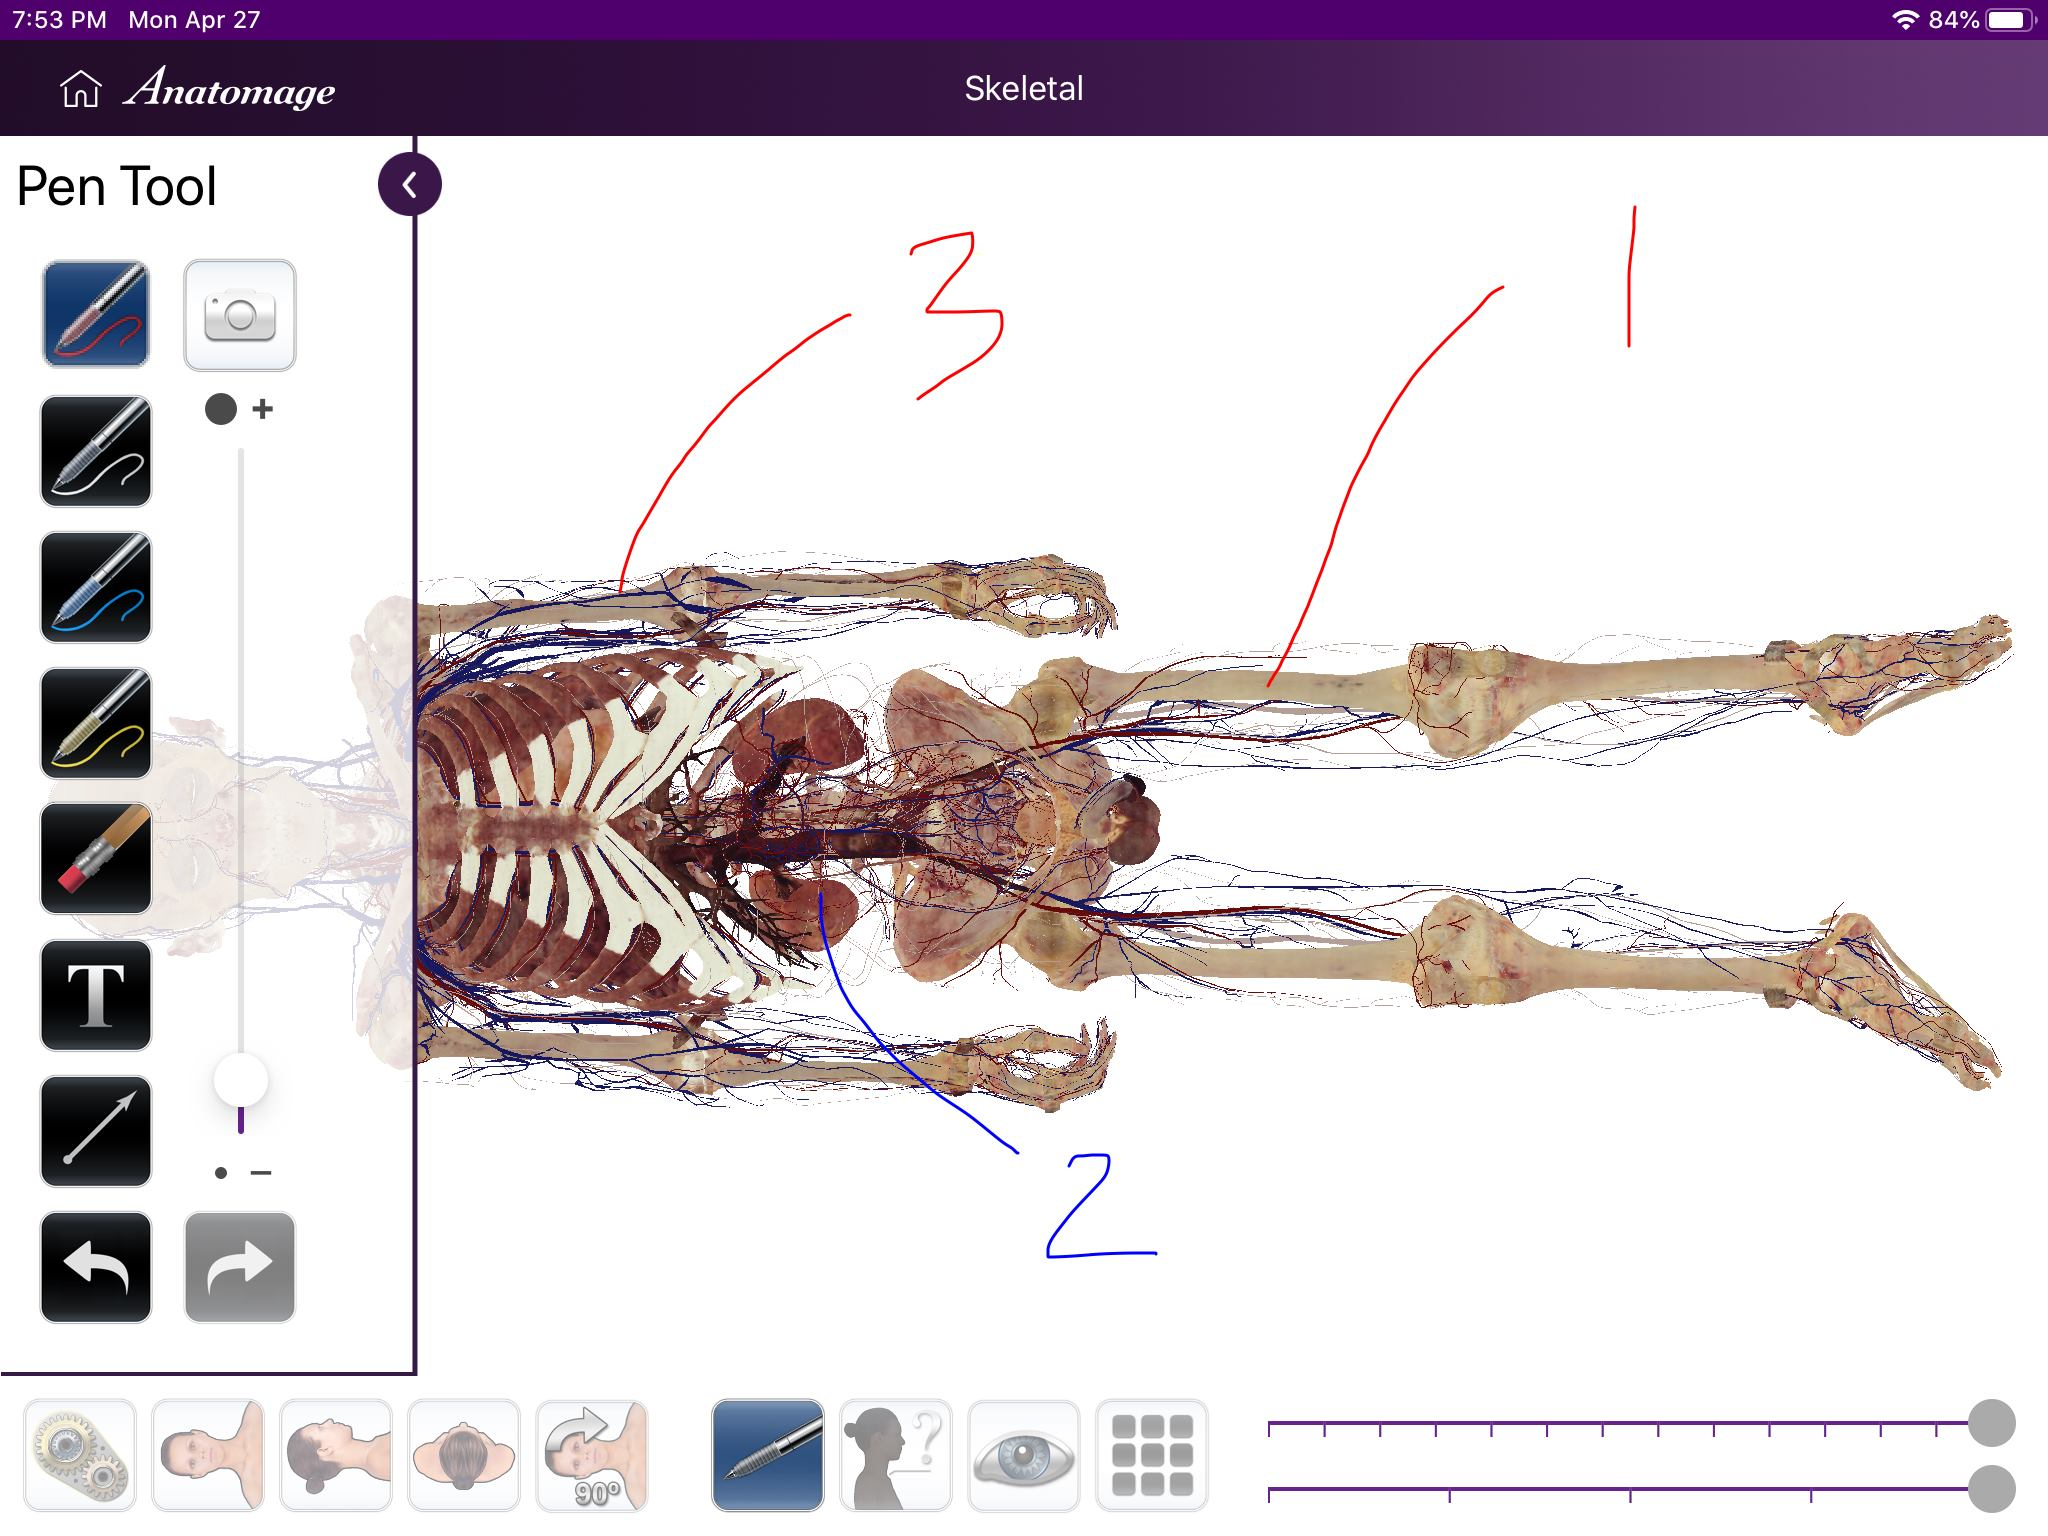 Anatomage 最新 iPad app - Anatomage Table Companion